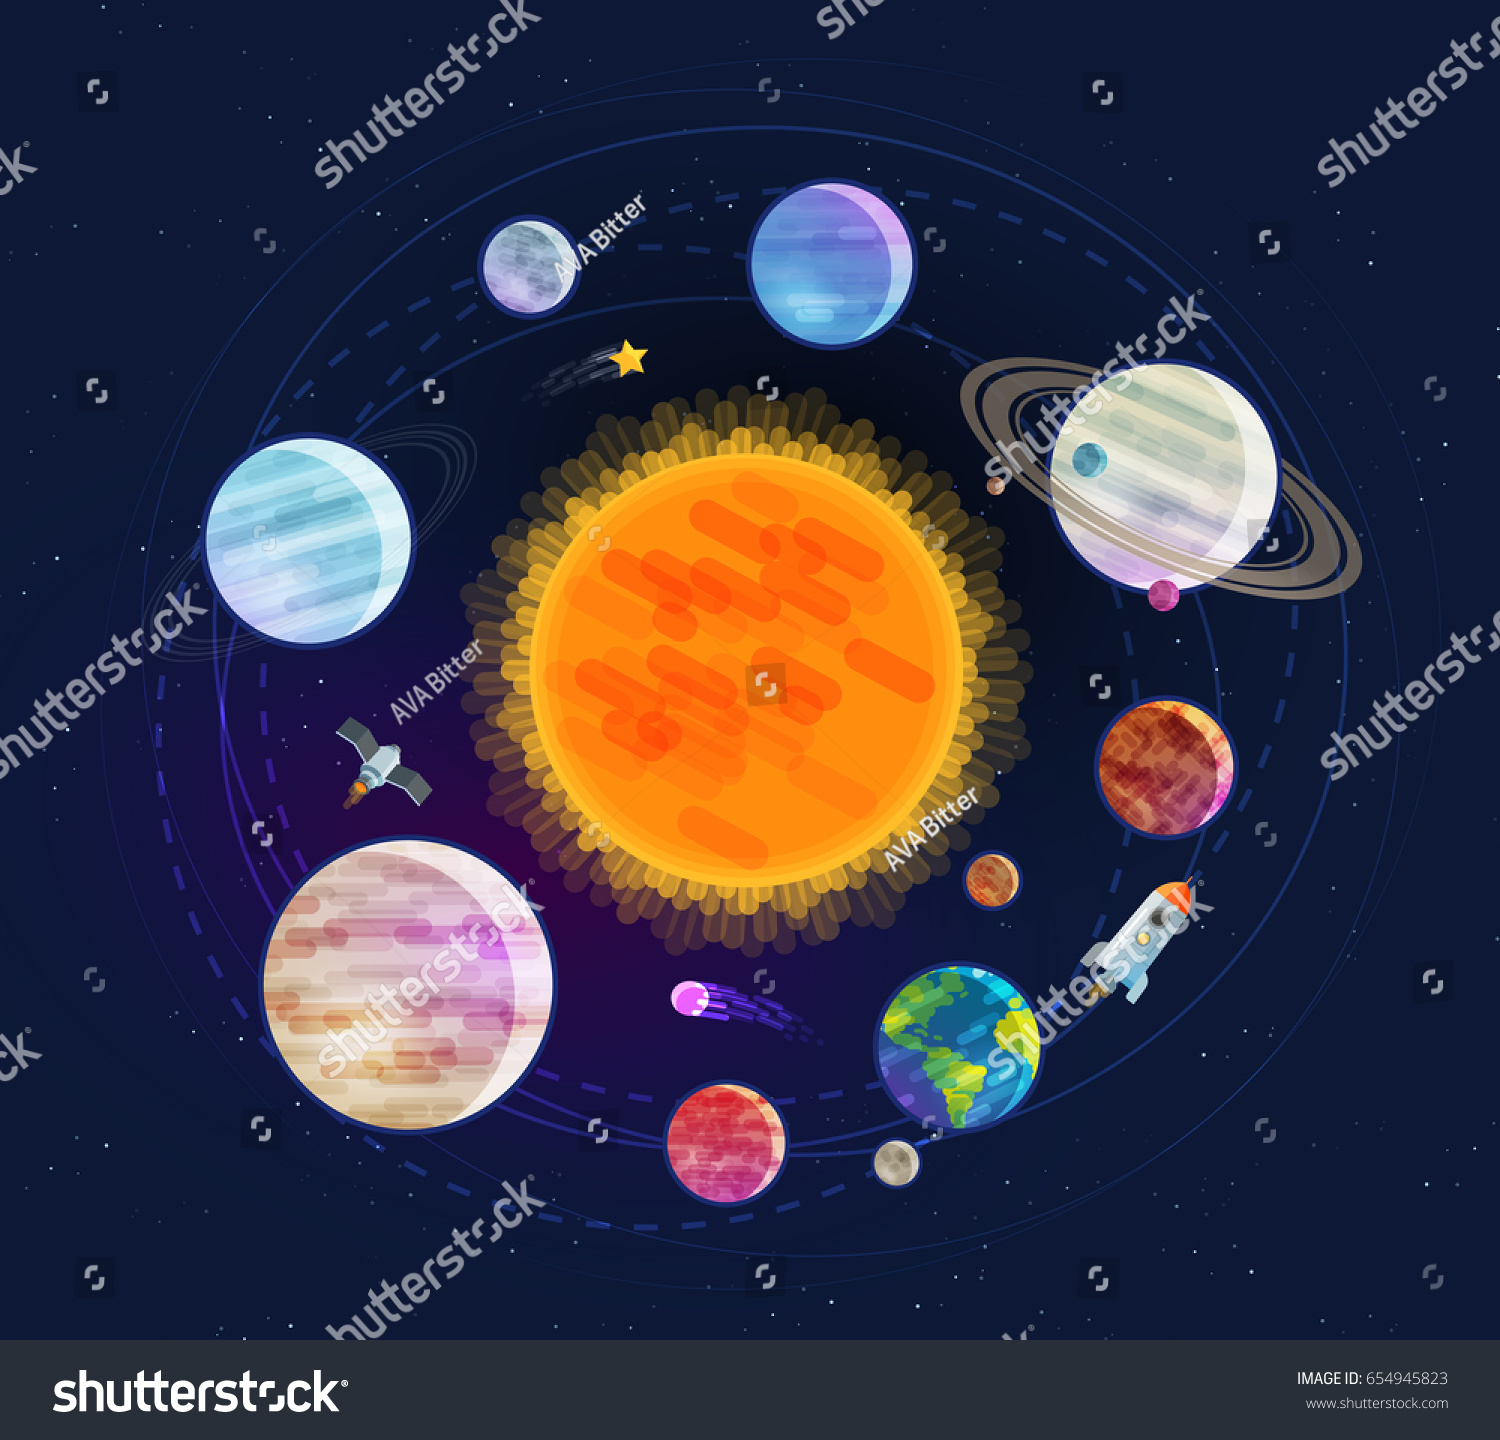 Astronomy Space Astrology Concept Solar System Stock ...